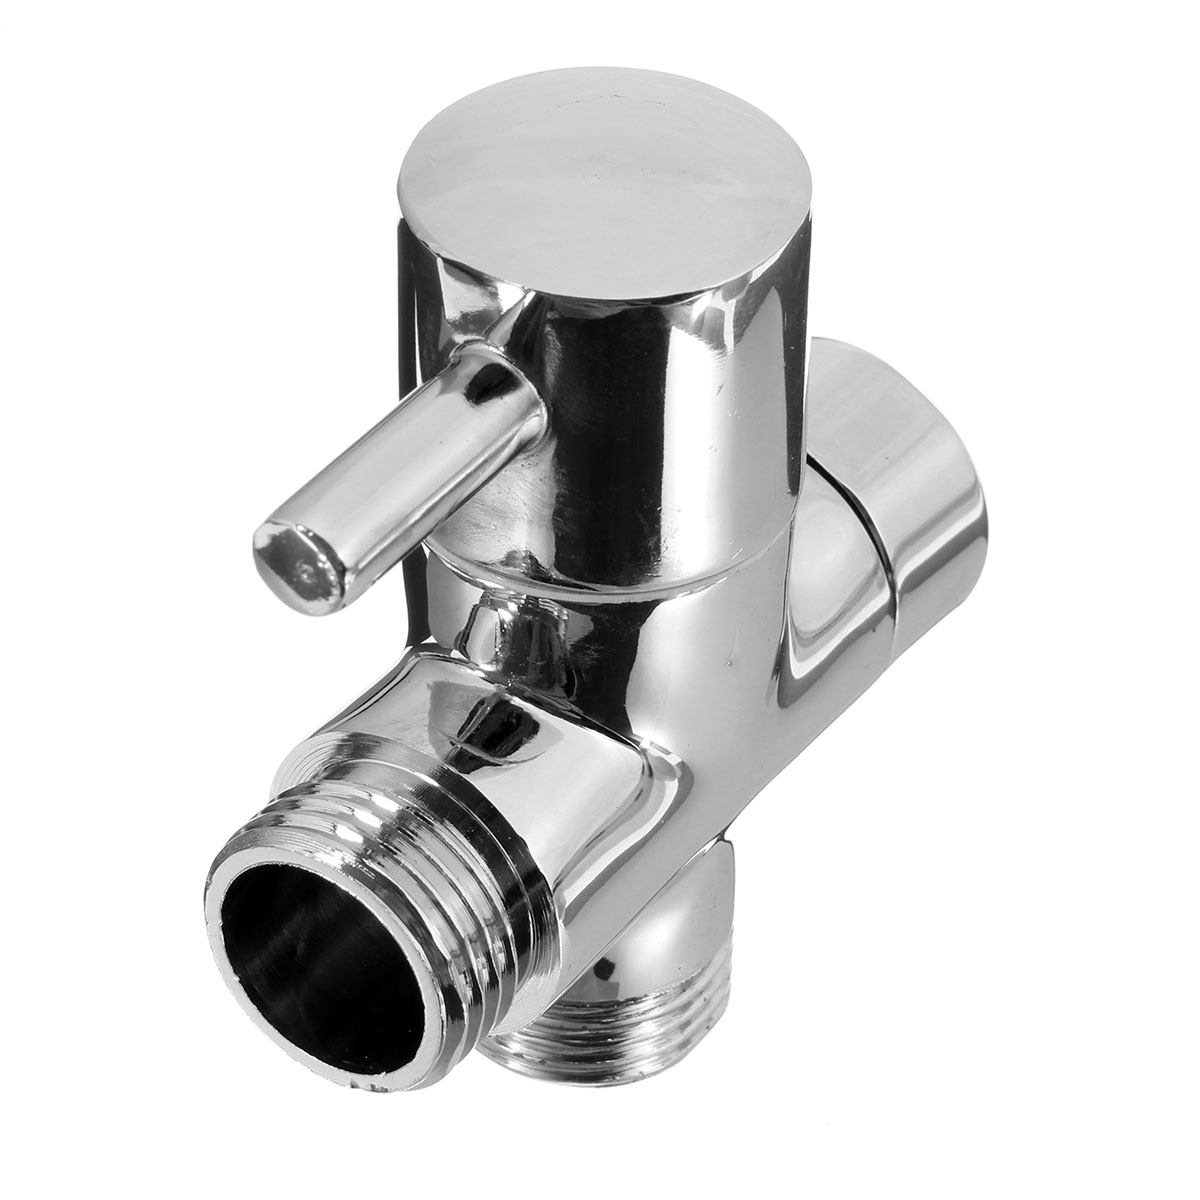 1/2 Brass Bathroom Shower Faucet Tee Connector Chrome Plated 3 Way Diverter Toilet Bidet Shattaf Valve1/2 Brass Bathroom Shower Faucet Tee Connector Chrome Plated 3 Way Diverter Toilet Bidet Shattaf Valve